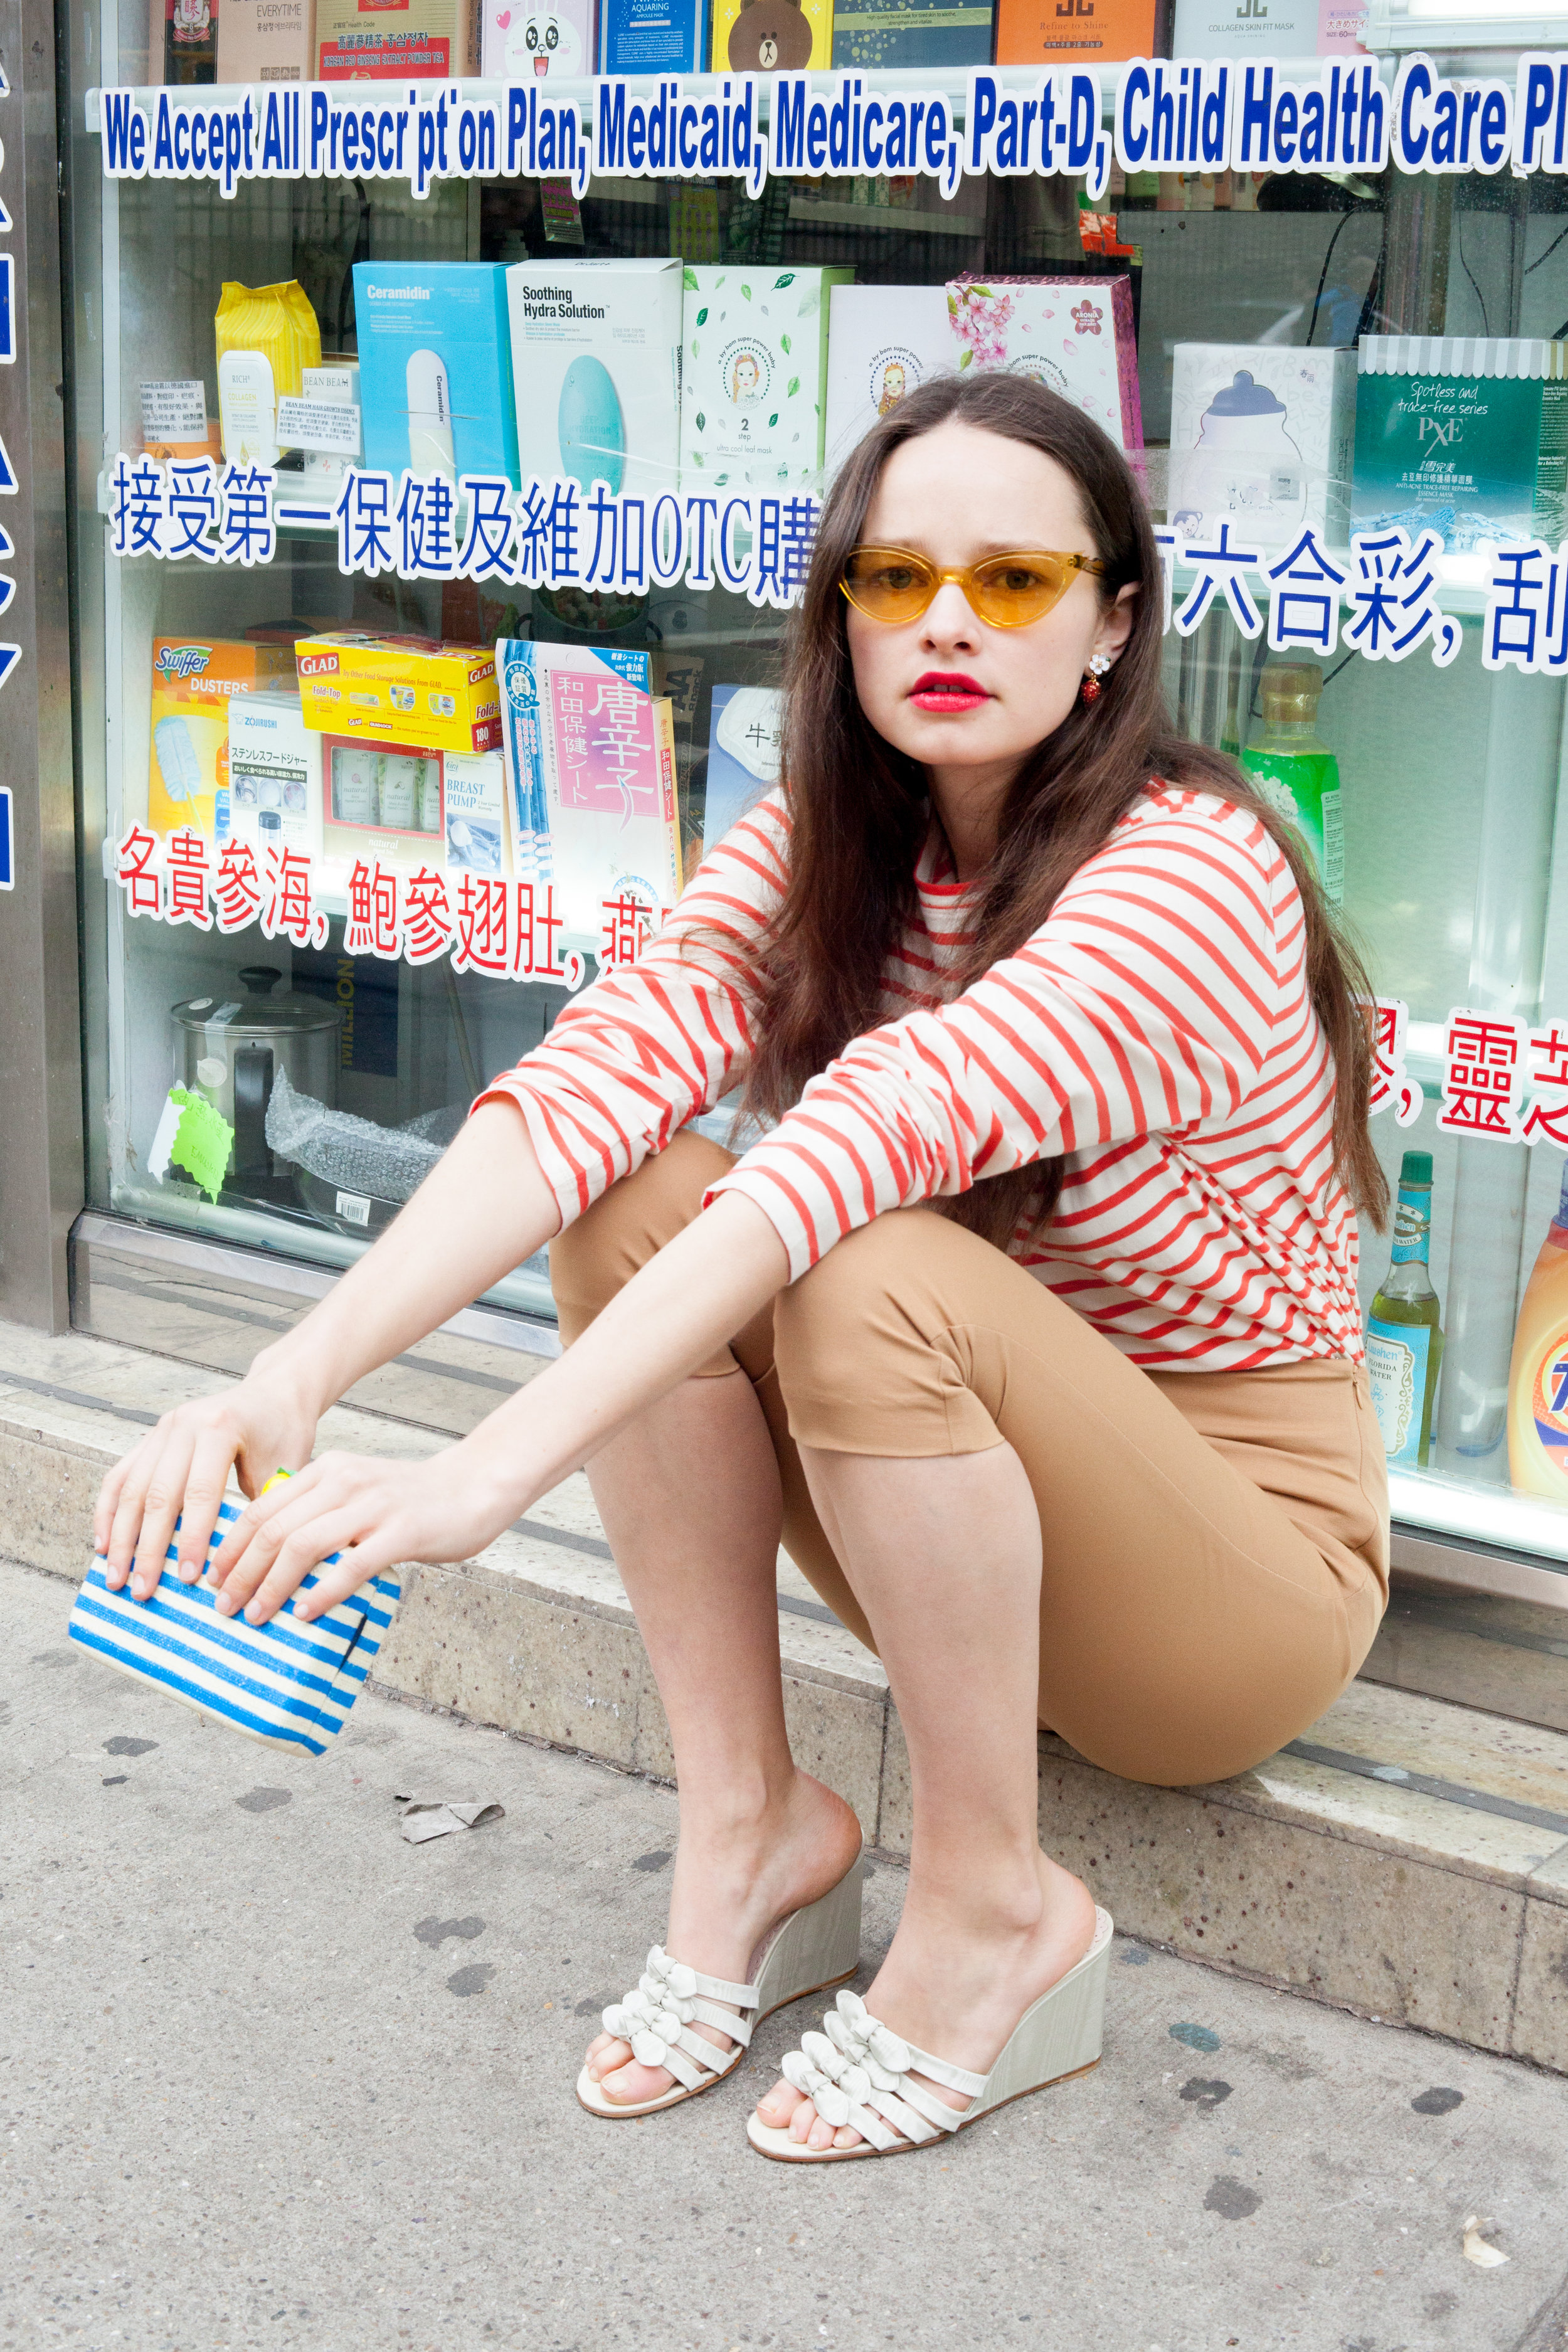 MR by Man Repeller Shoes Leandra Medine Cohen Hannah Kuessner Edith Young Man Repeller March 2018-4855.jpg